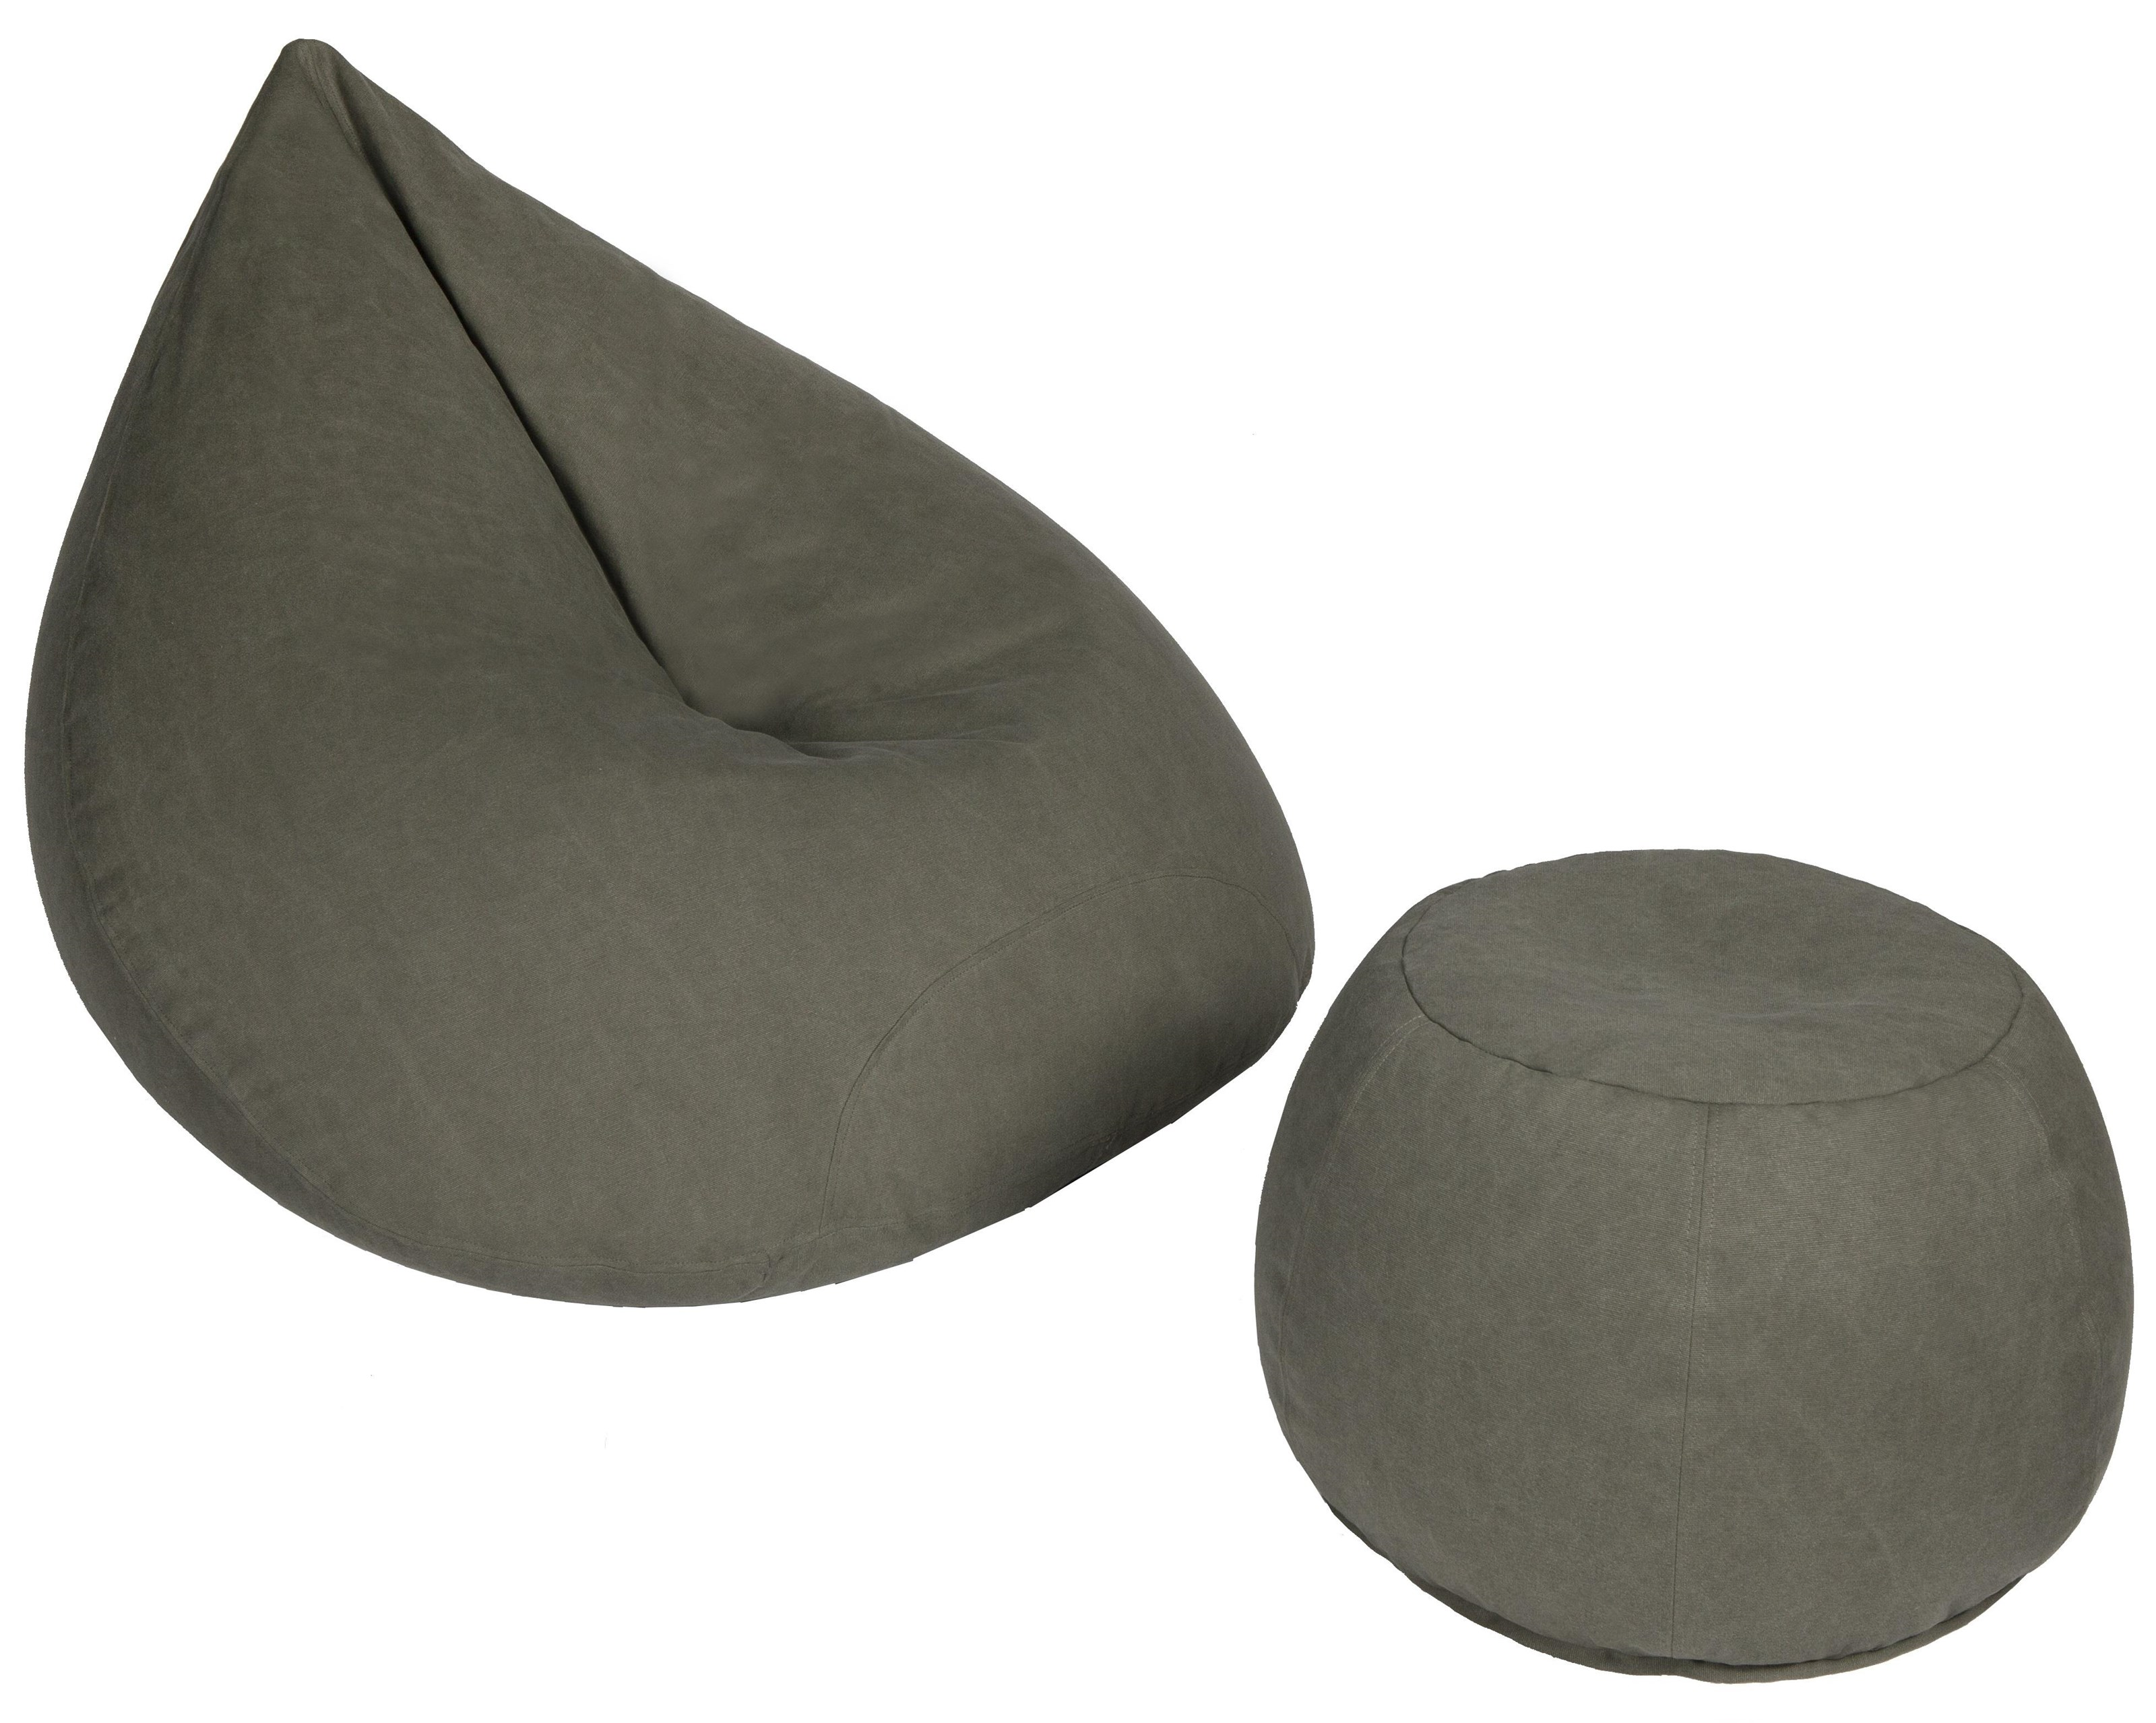 Beanbag Grey Beanbag Large Tear & Ottoman Pack by Lazy Life Paris at Red Knot